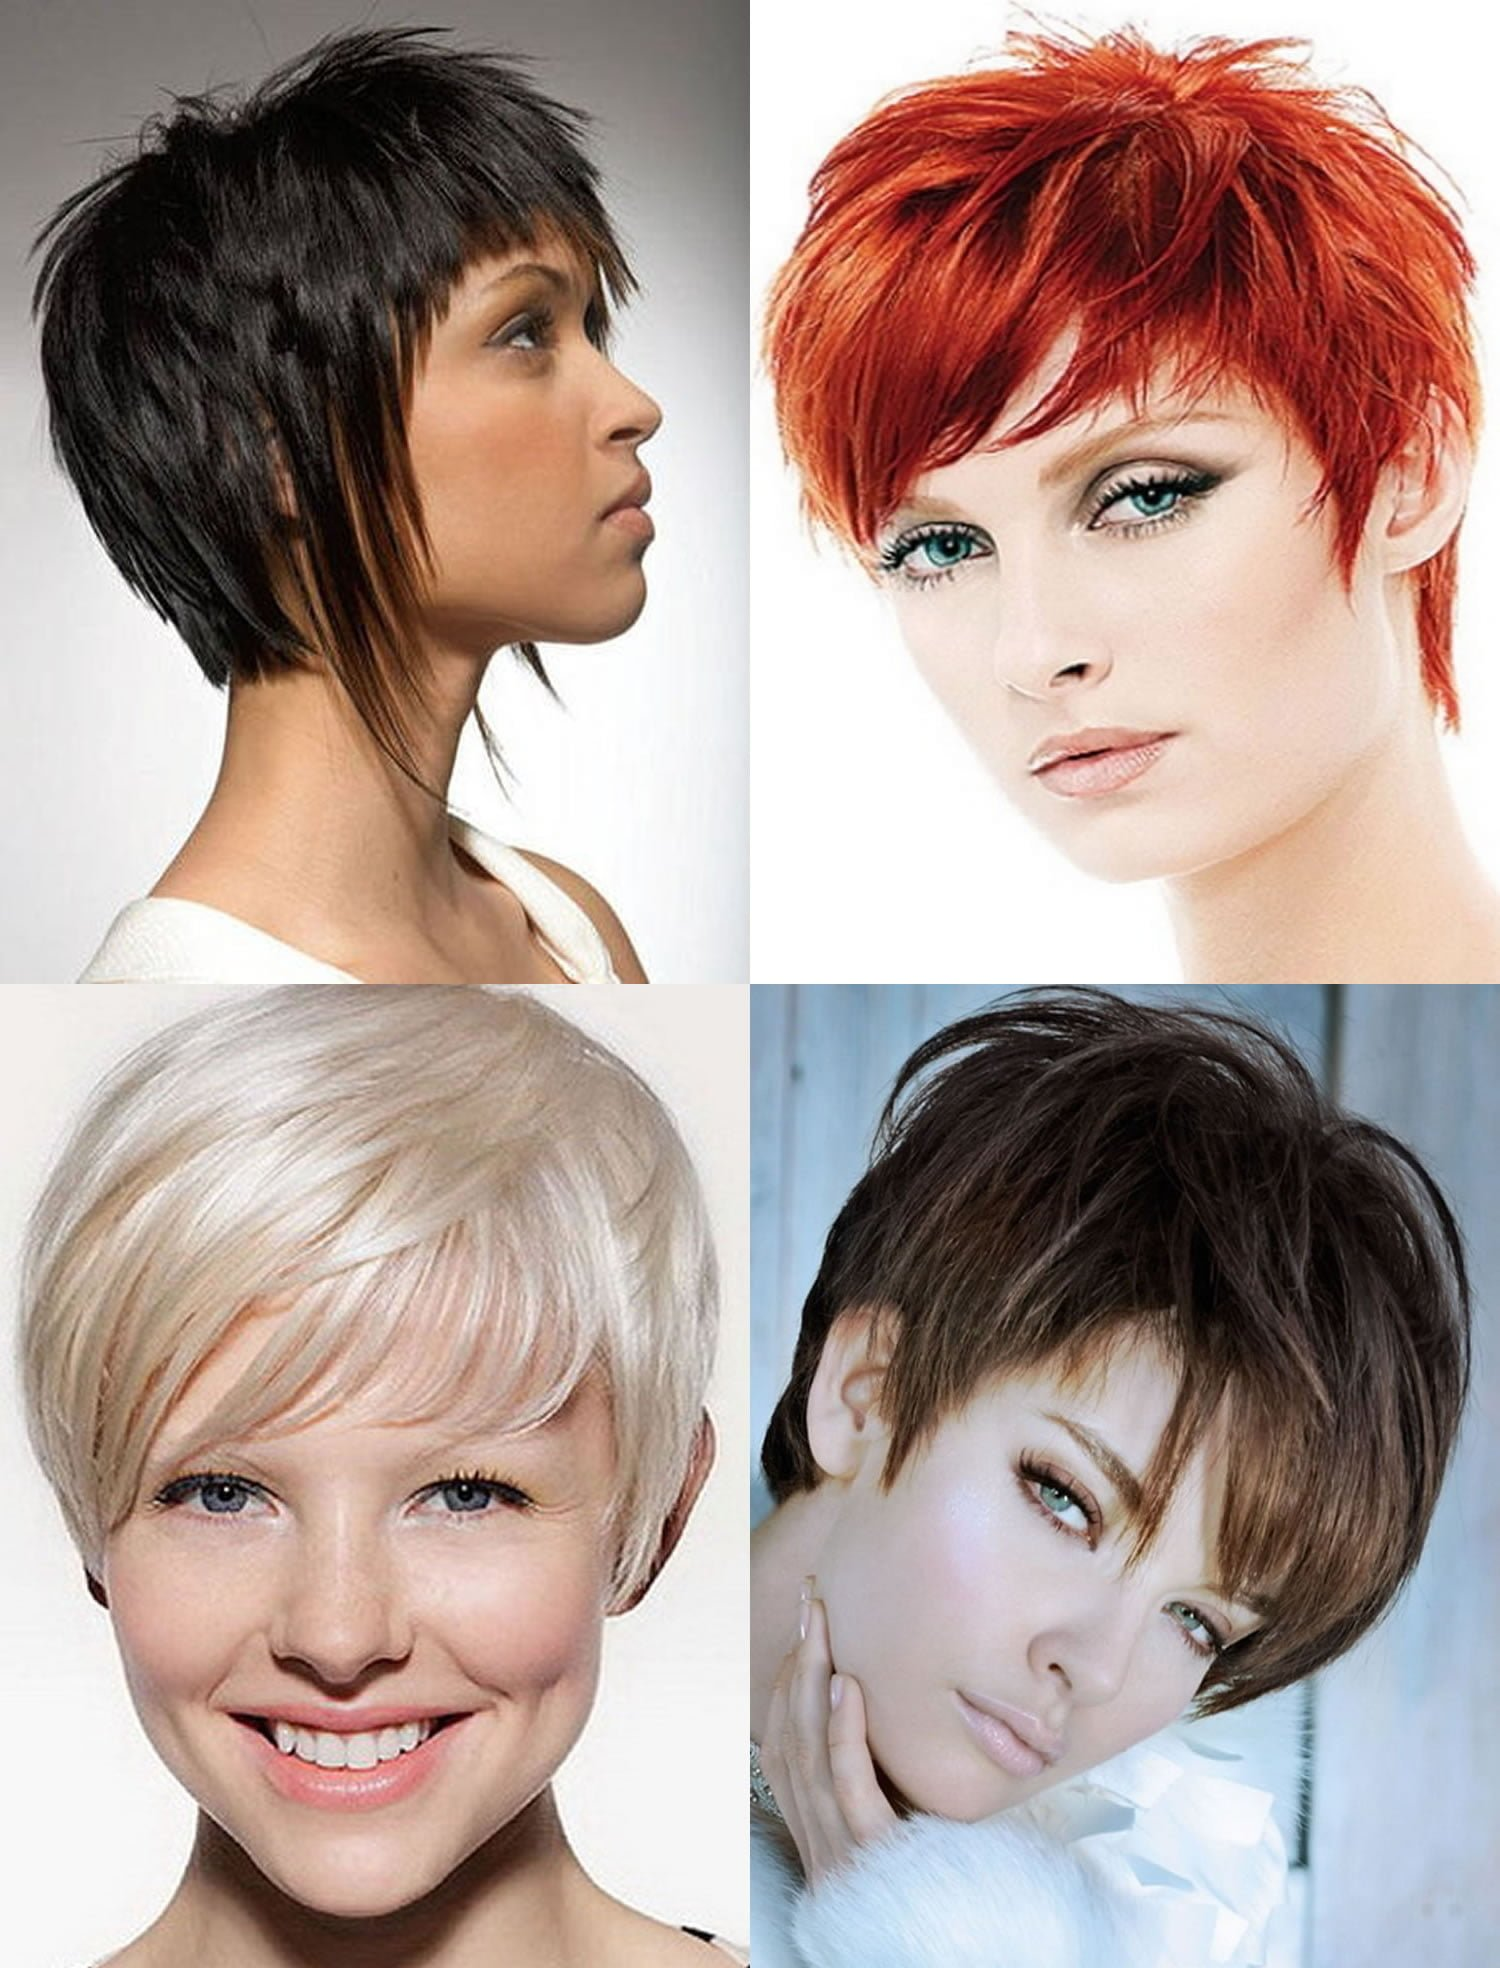 Free 33 Unbelievable Hairstyles For Diamond Face Shape – Page 3 Wallpaper